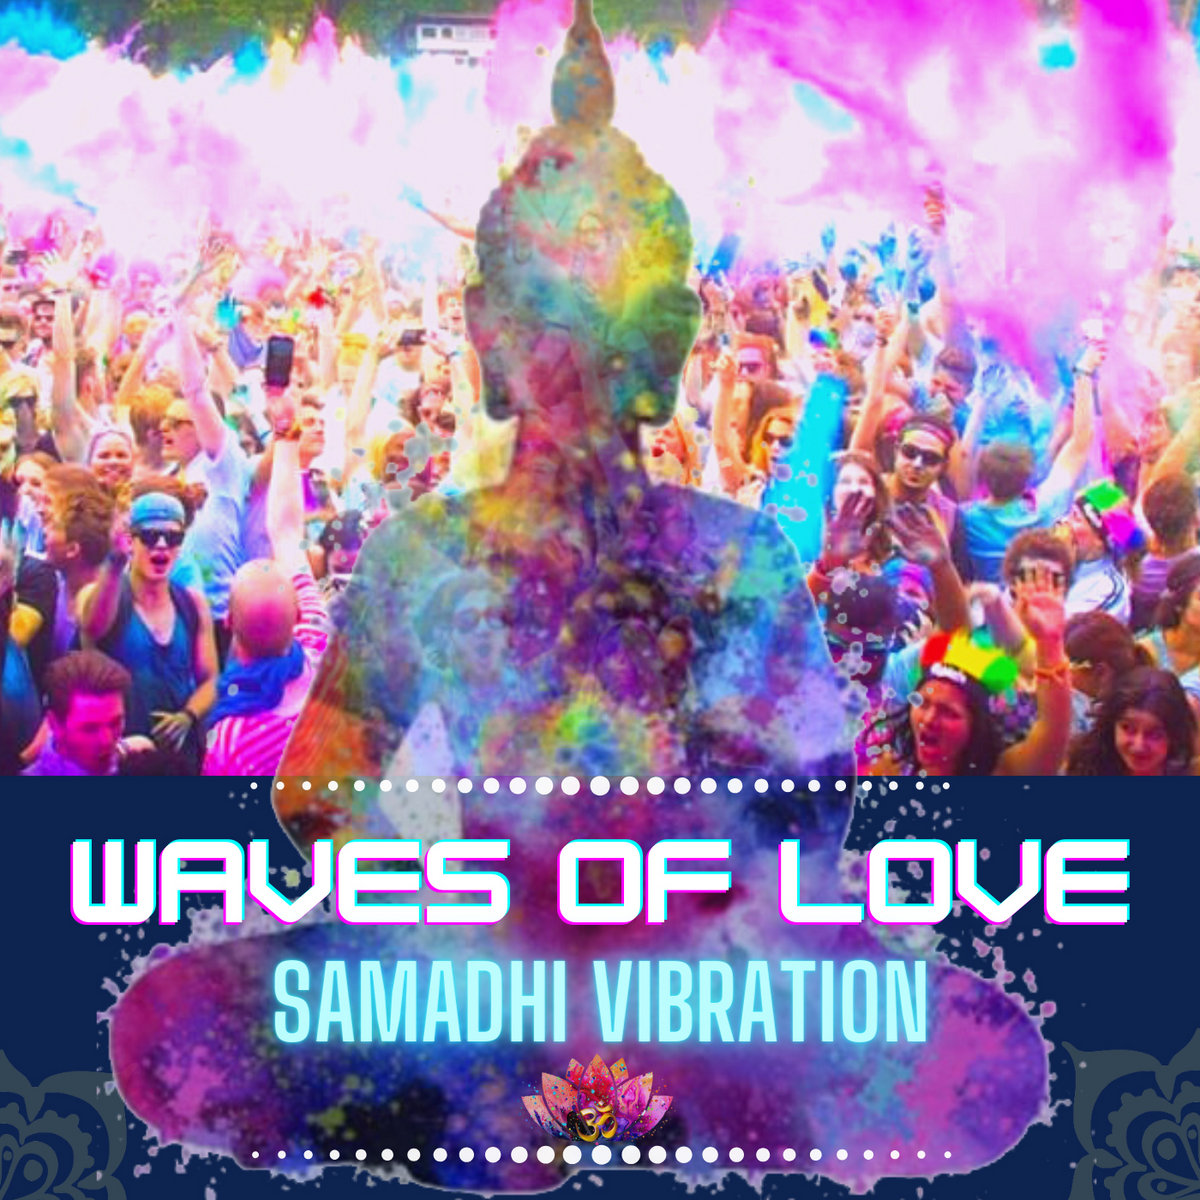 *SINGLE: Waves of Love by Samadhi Vibration, Electronic & Mantra Dance Music